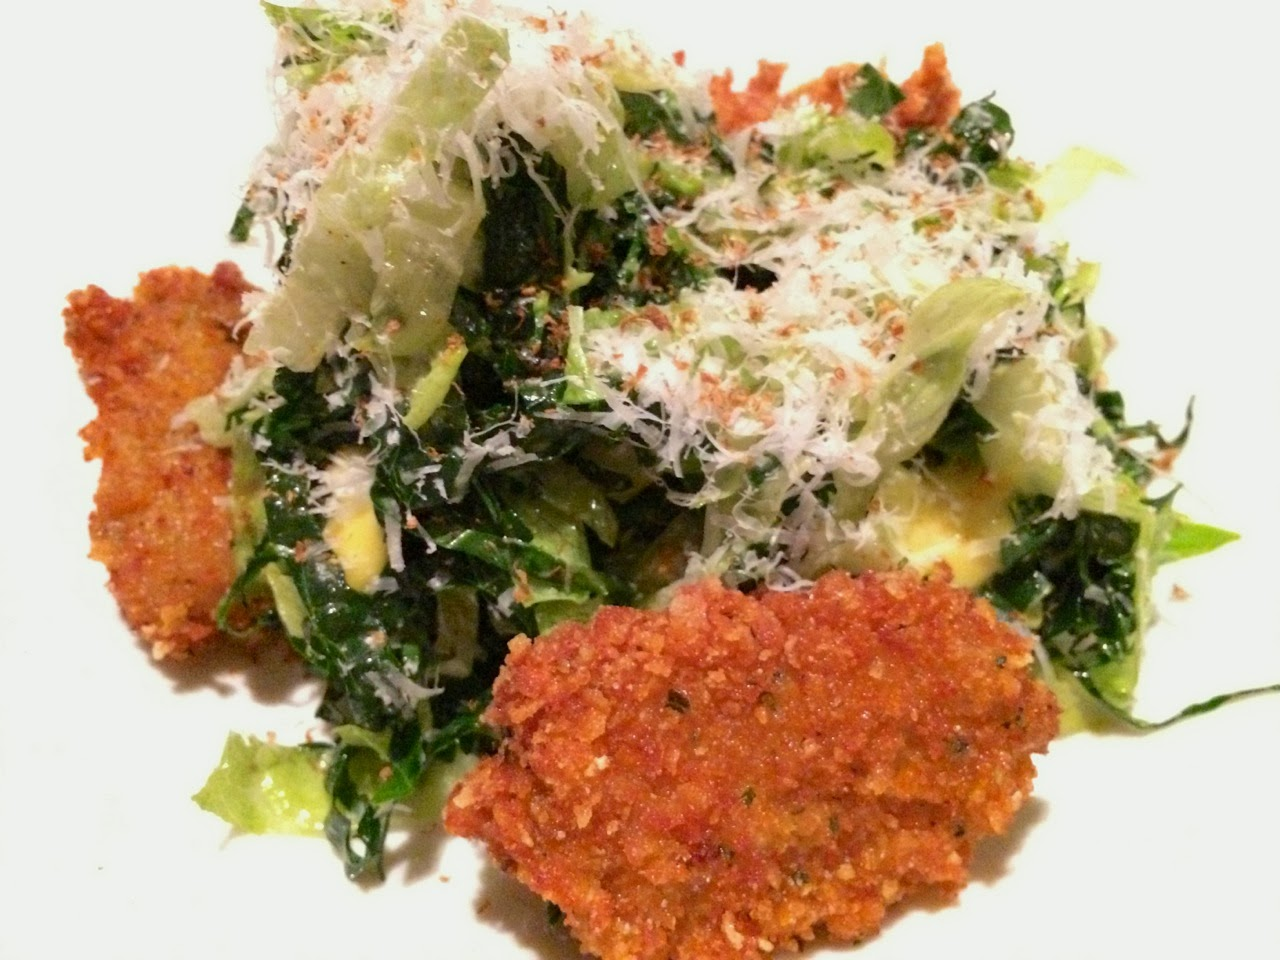 Aggio caesar salad with fried oysters